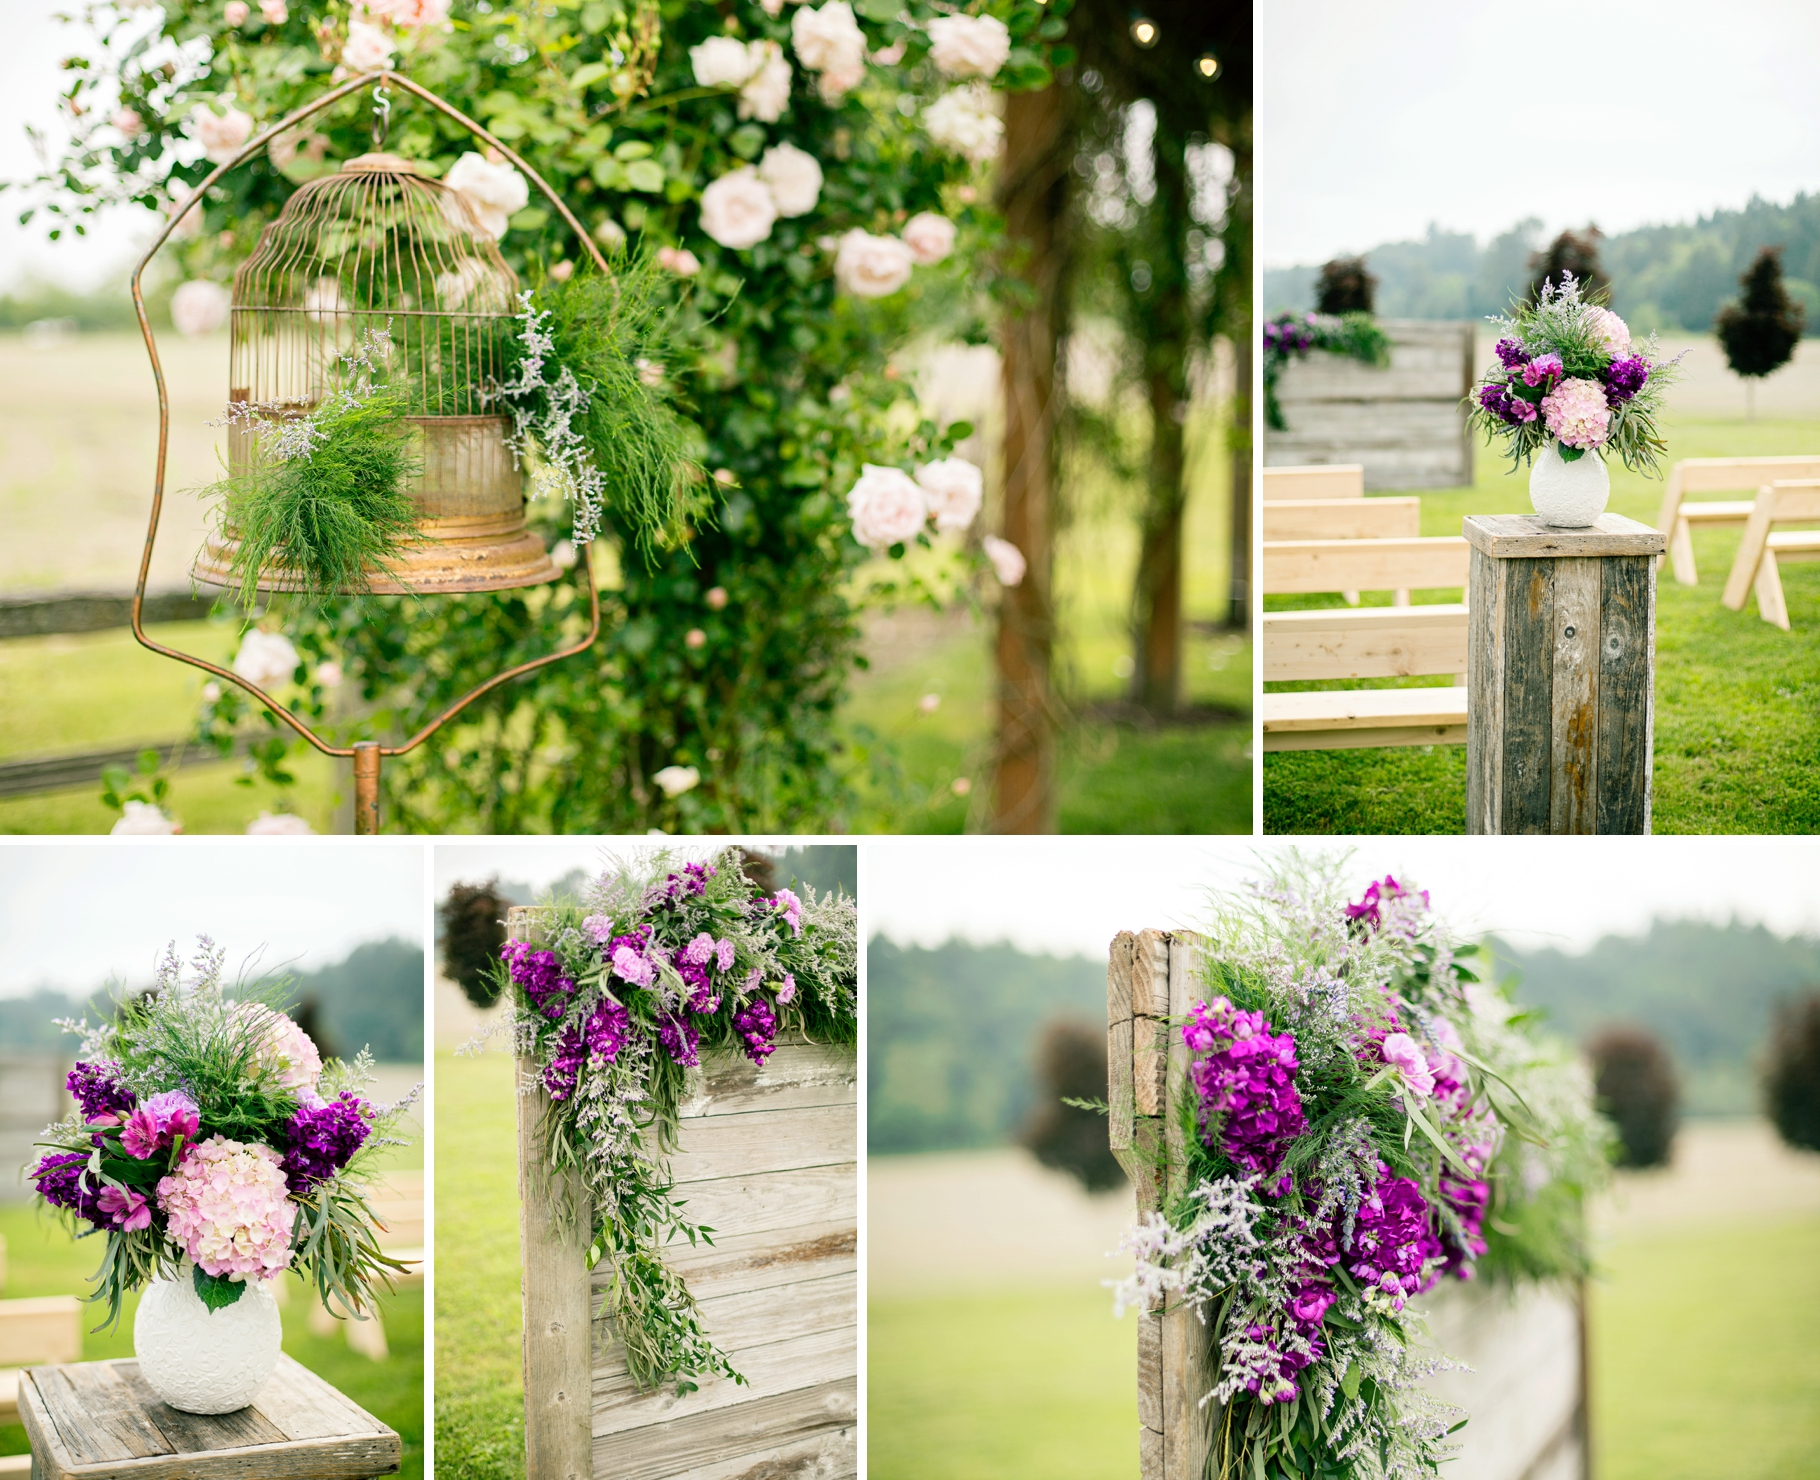 7-Craven-Farm-Ceremony-Florals-Countryside-Snohomish-Wedding-Tour-Seattle-Photographer-Photography-by-Betty-Elaine